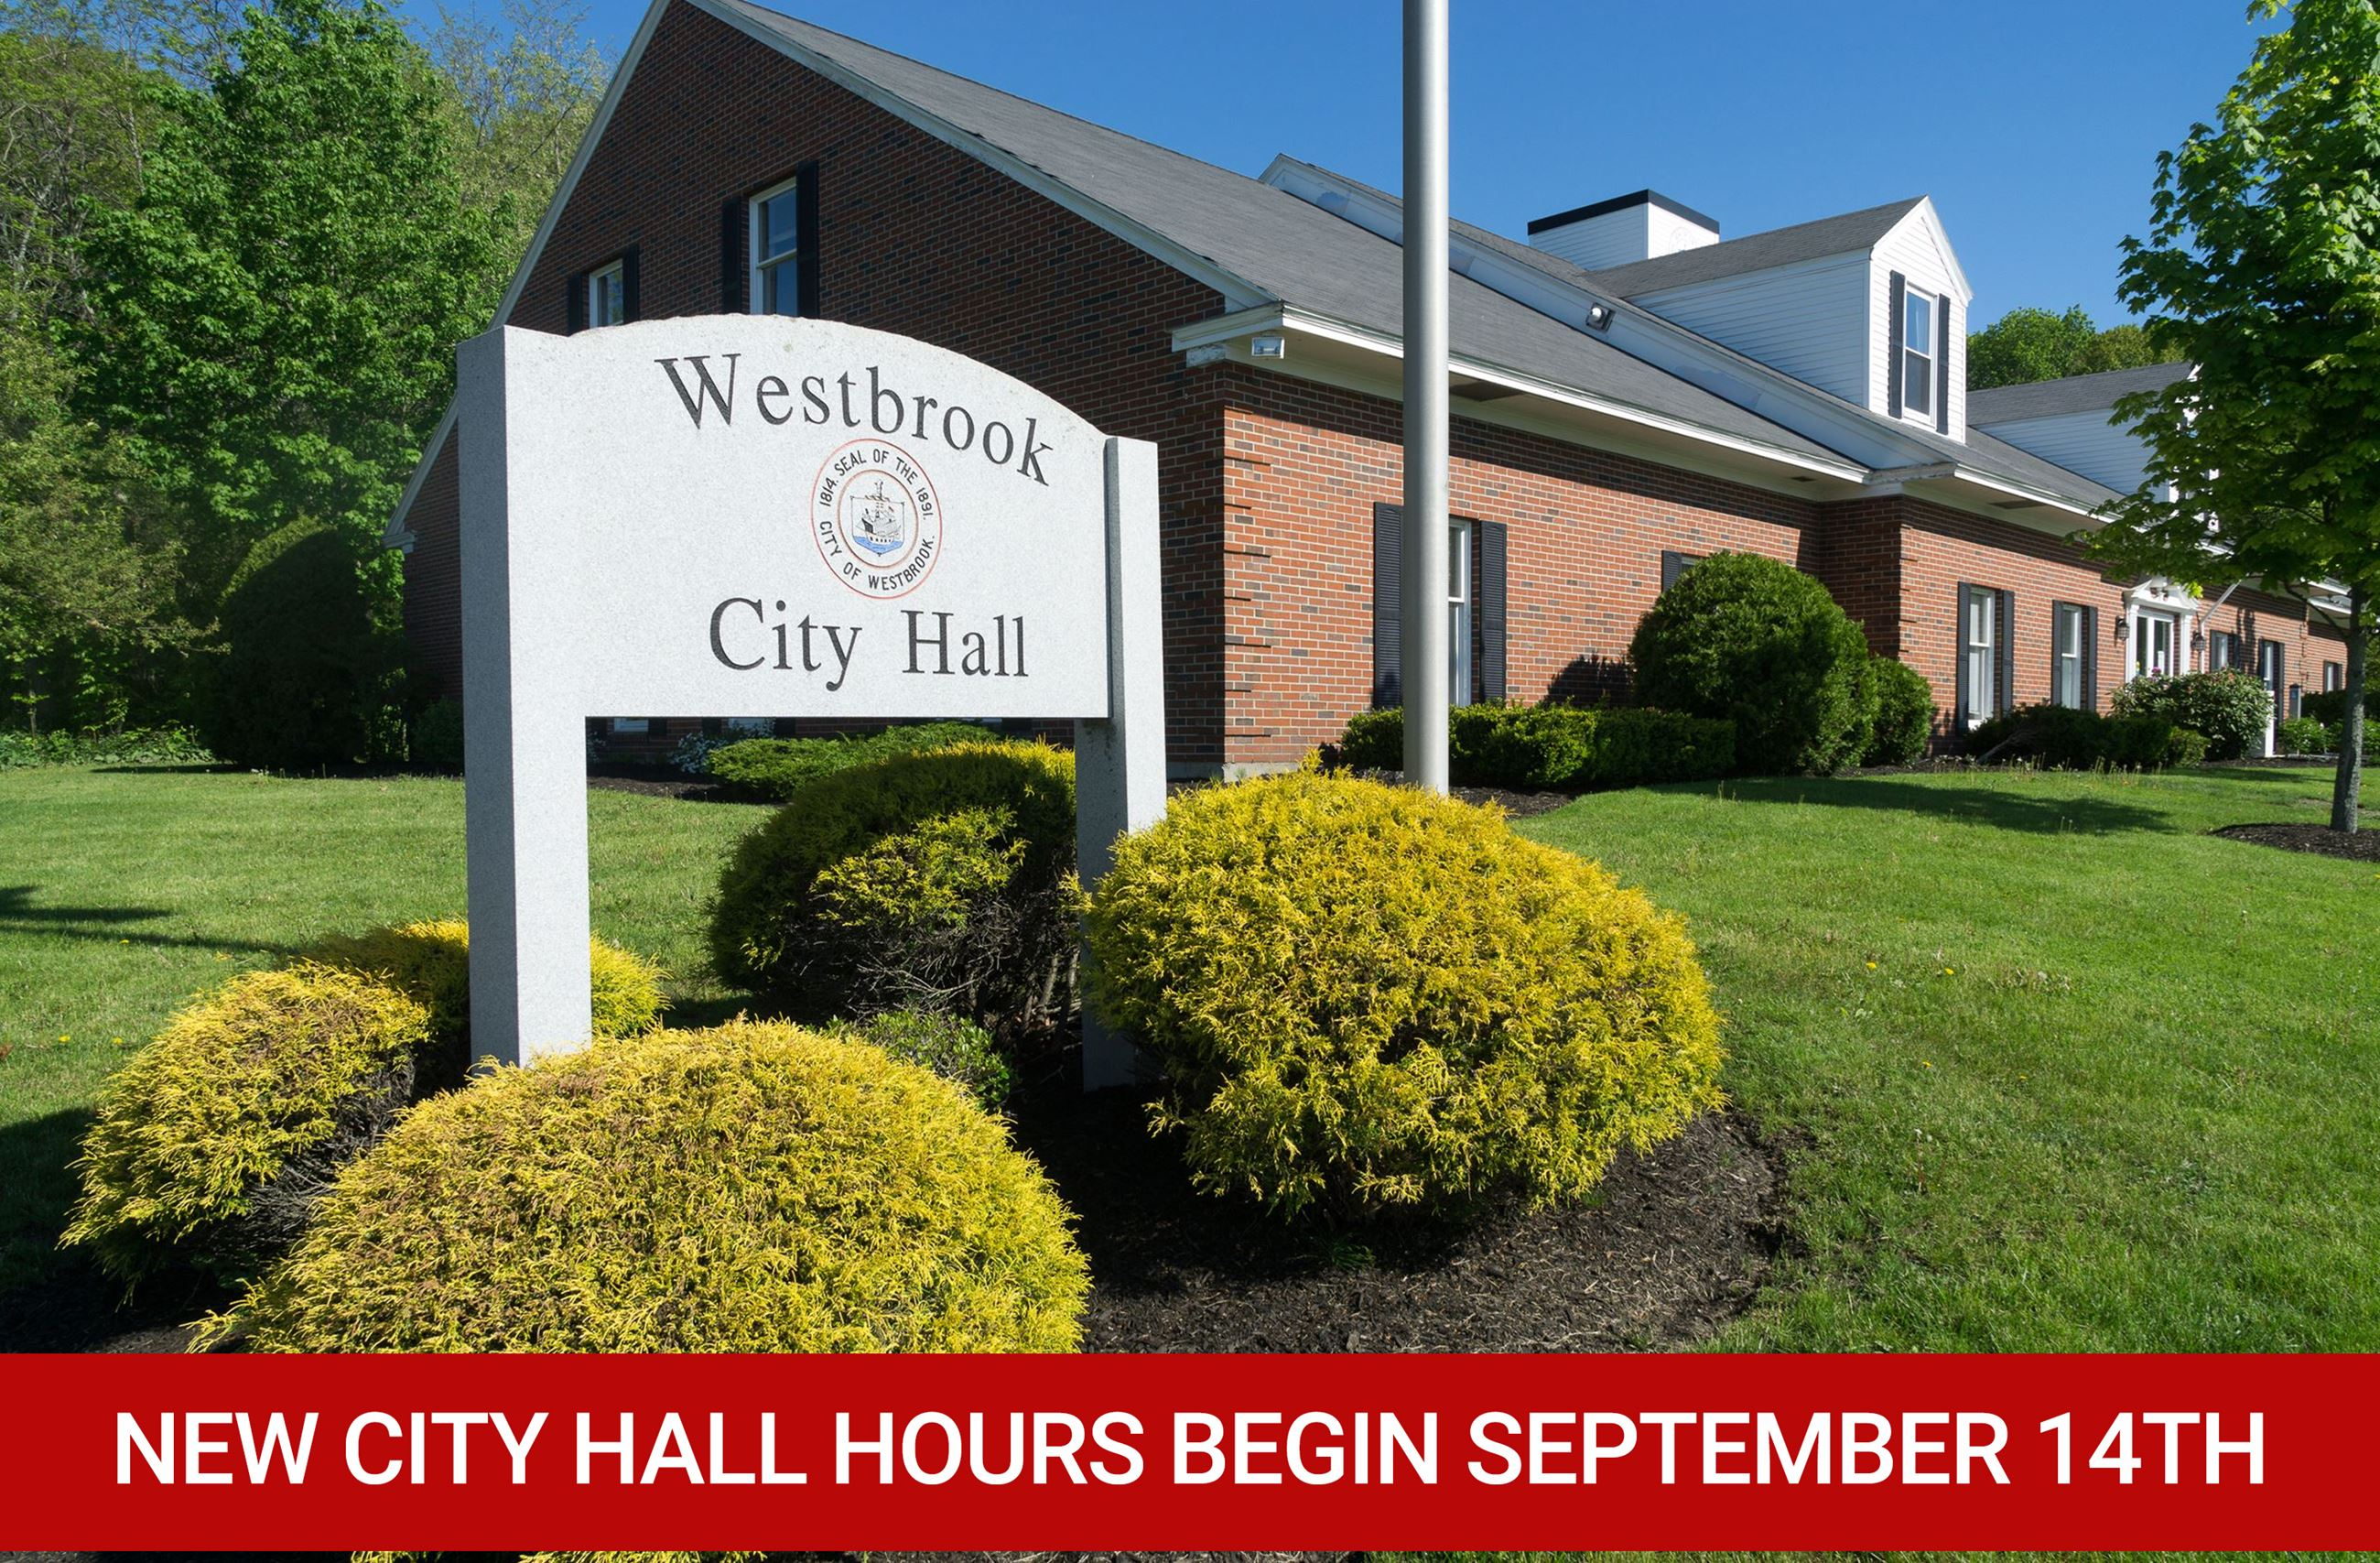 News City Hall Hours